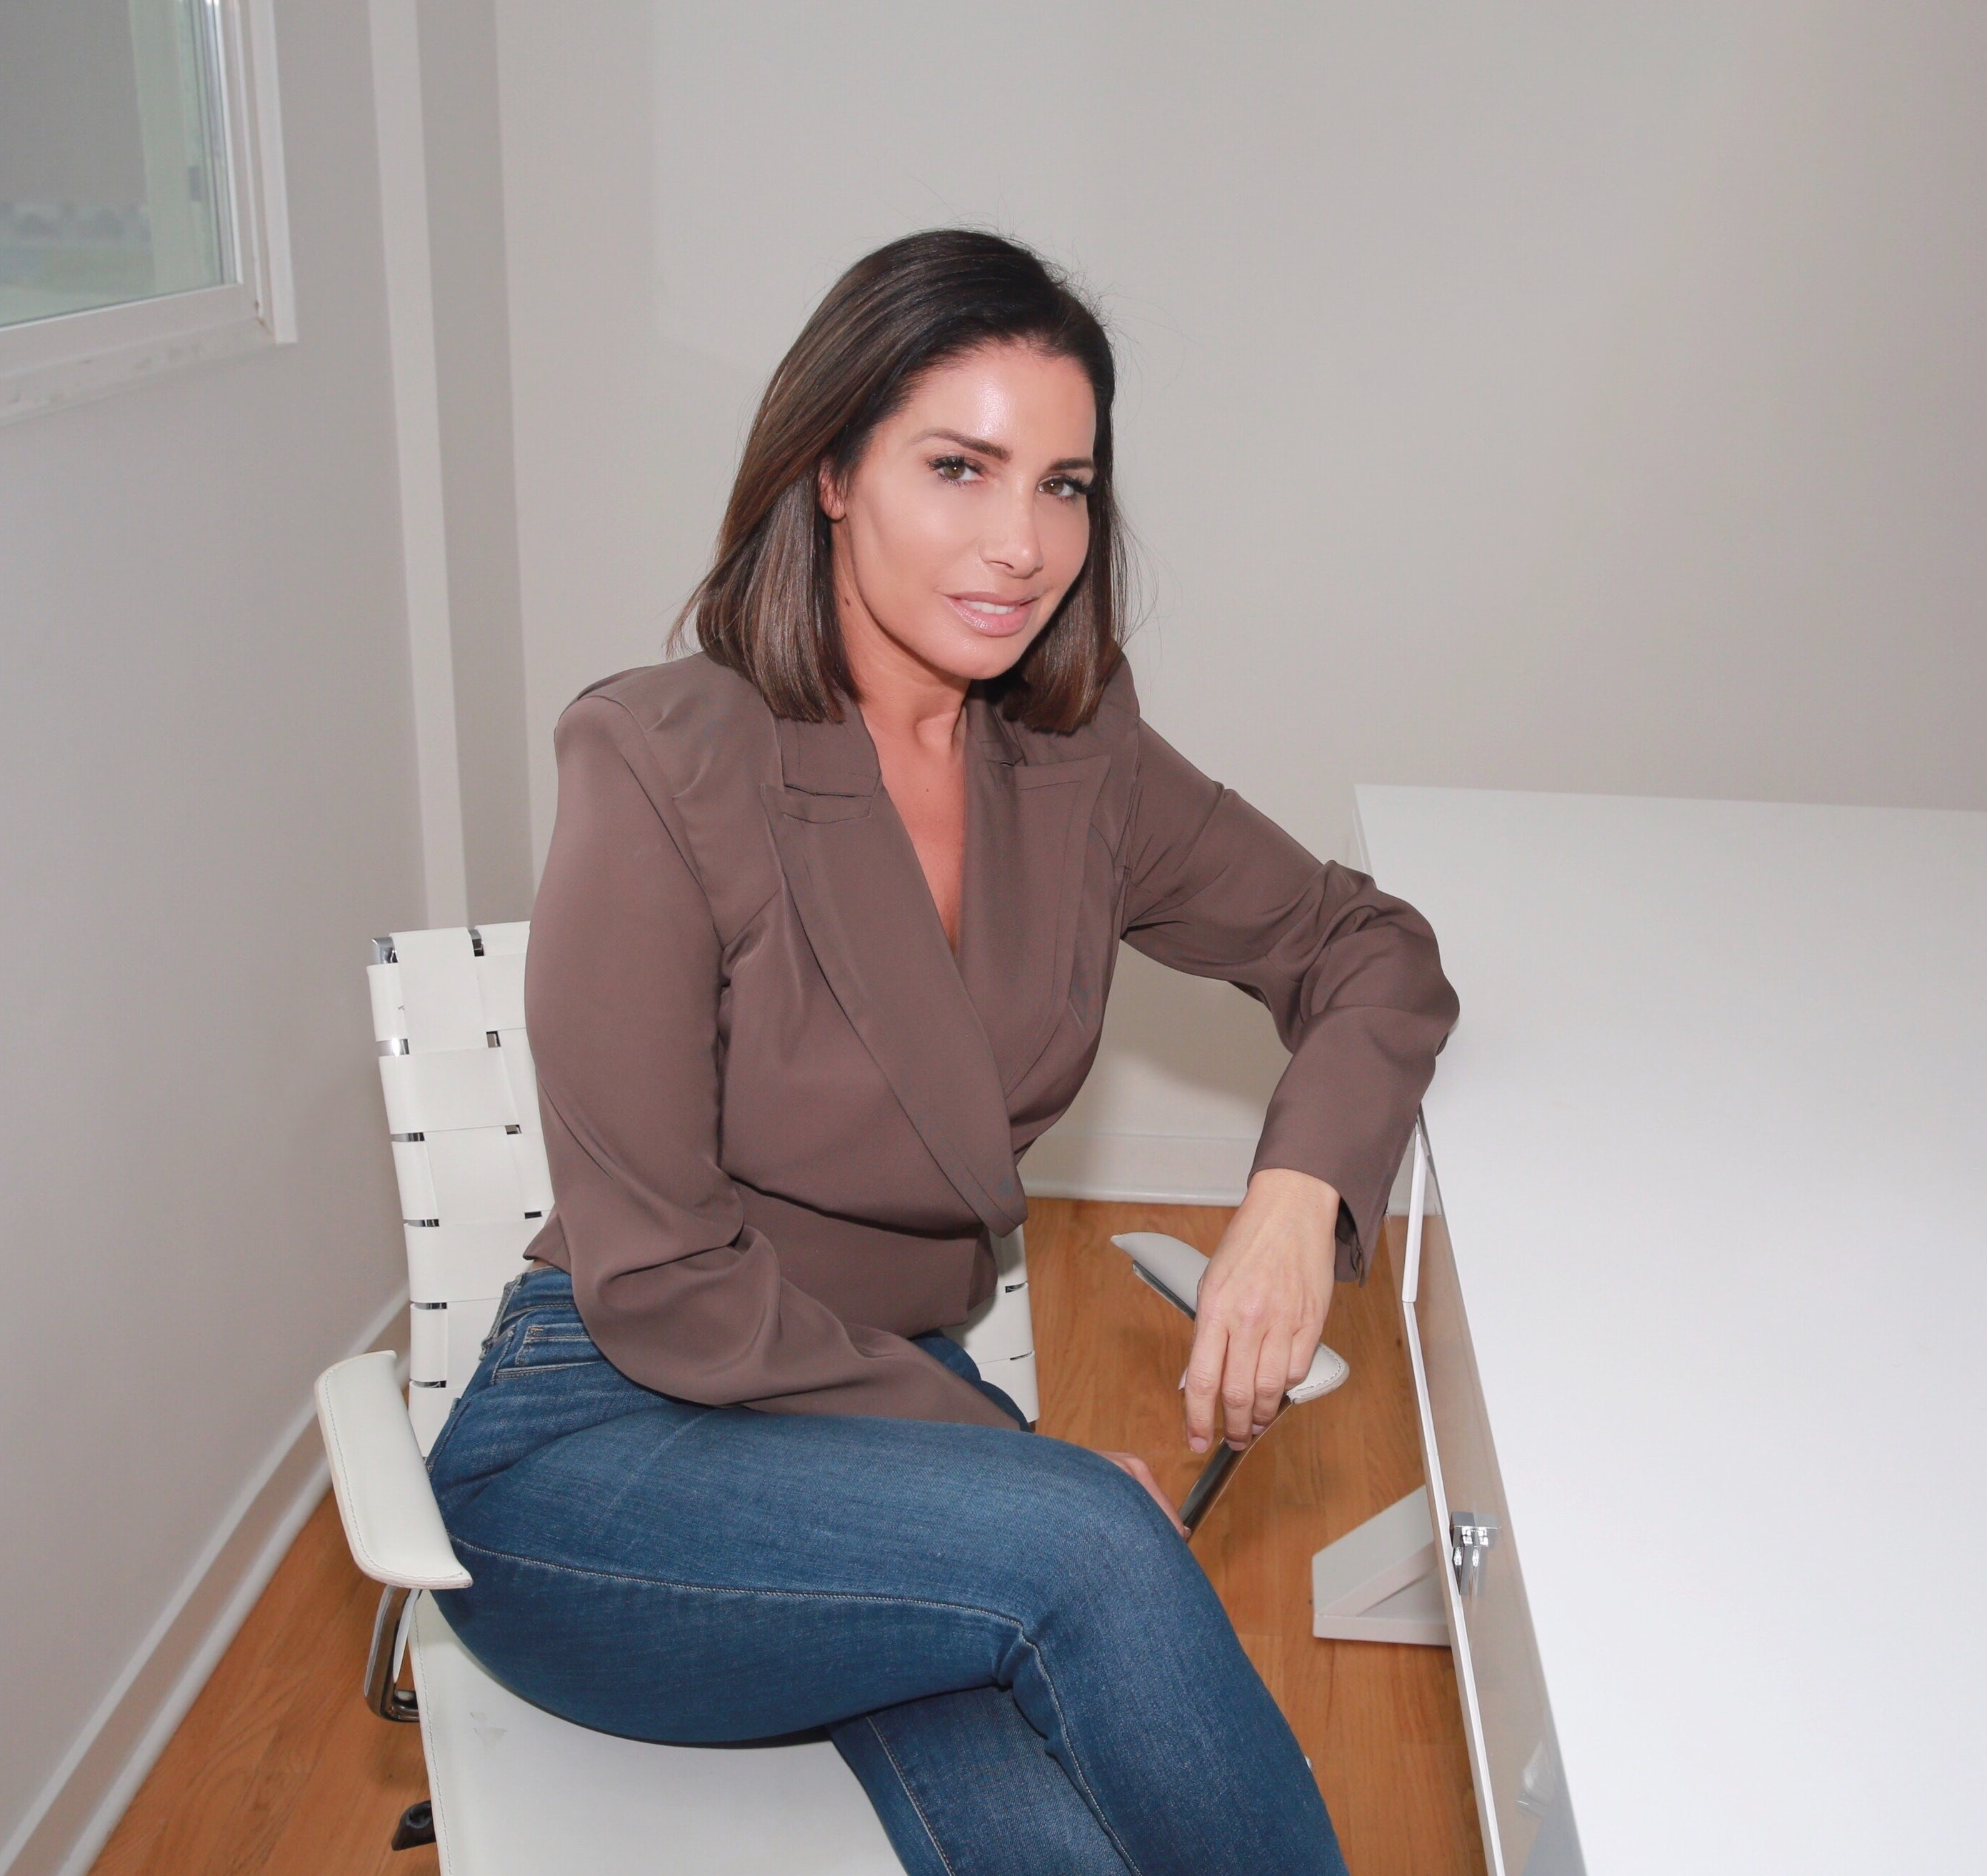 Tammy Brook, founder and president of FYI Brand Group